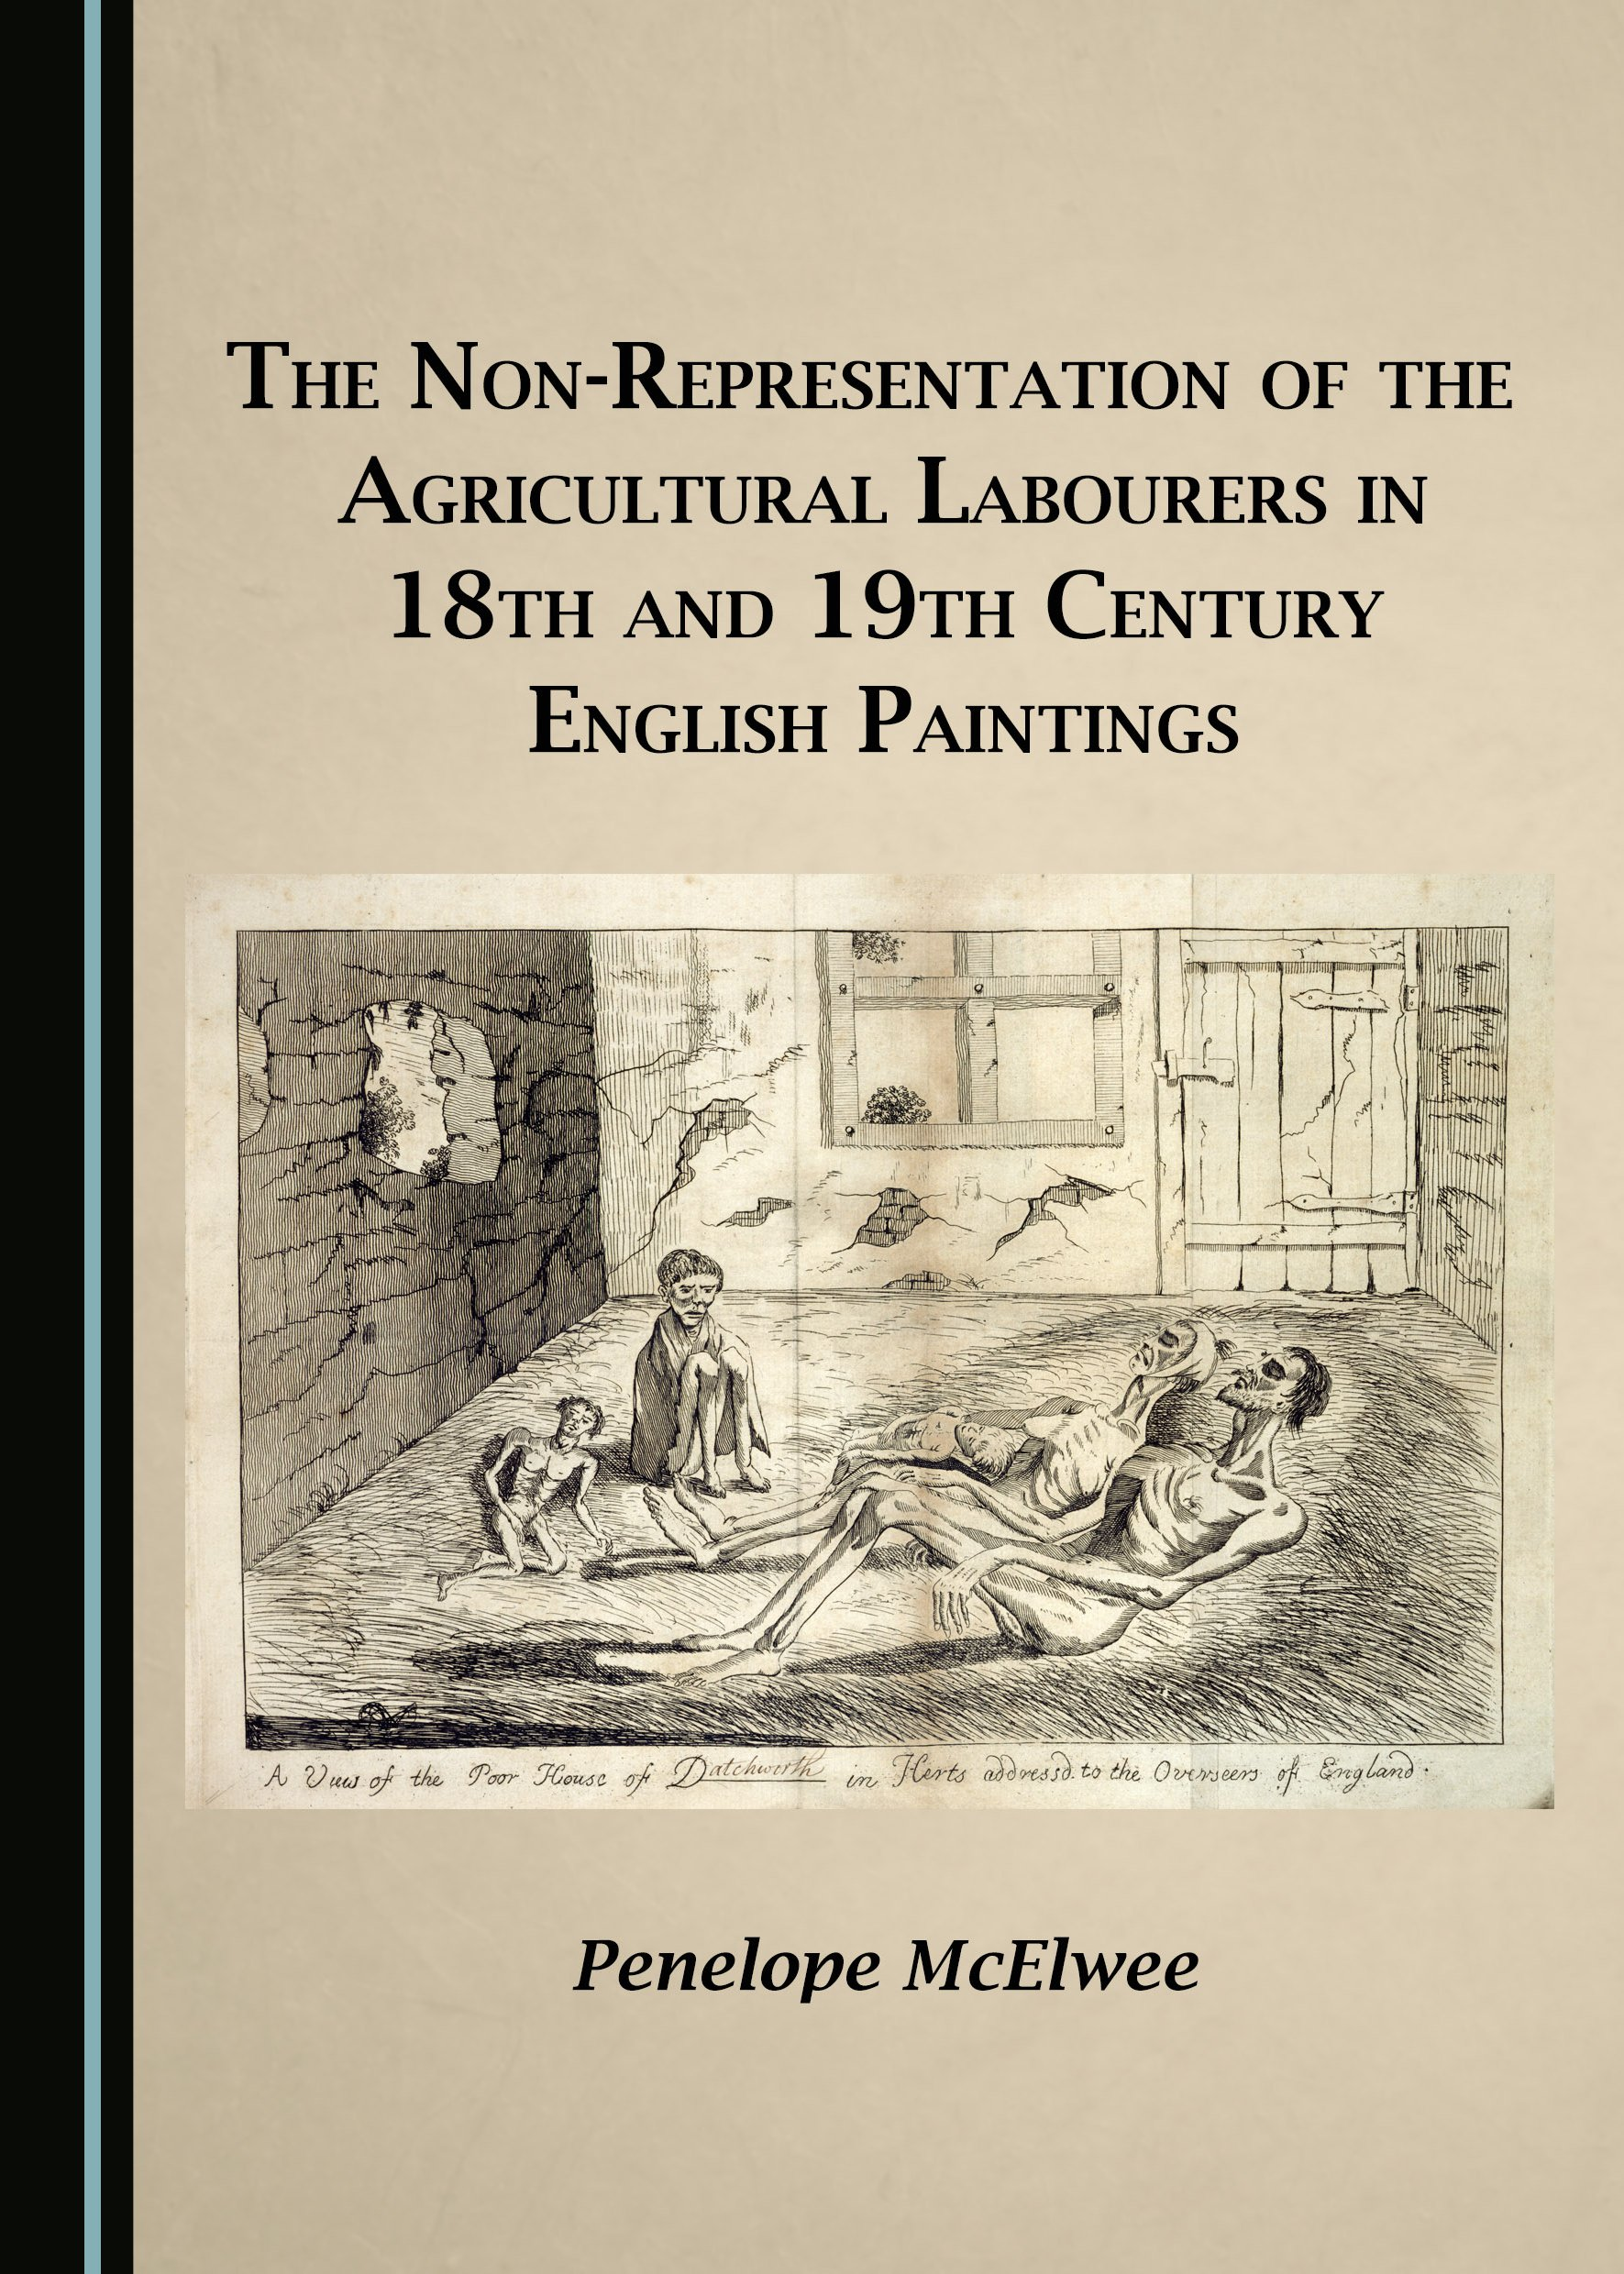 The Non-Representation of the Agricultural Labourers in 18th and 19th Century English Paintings